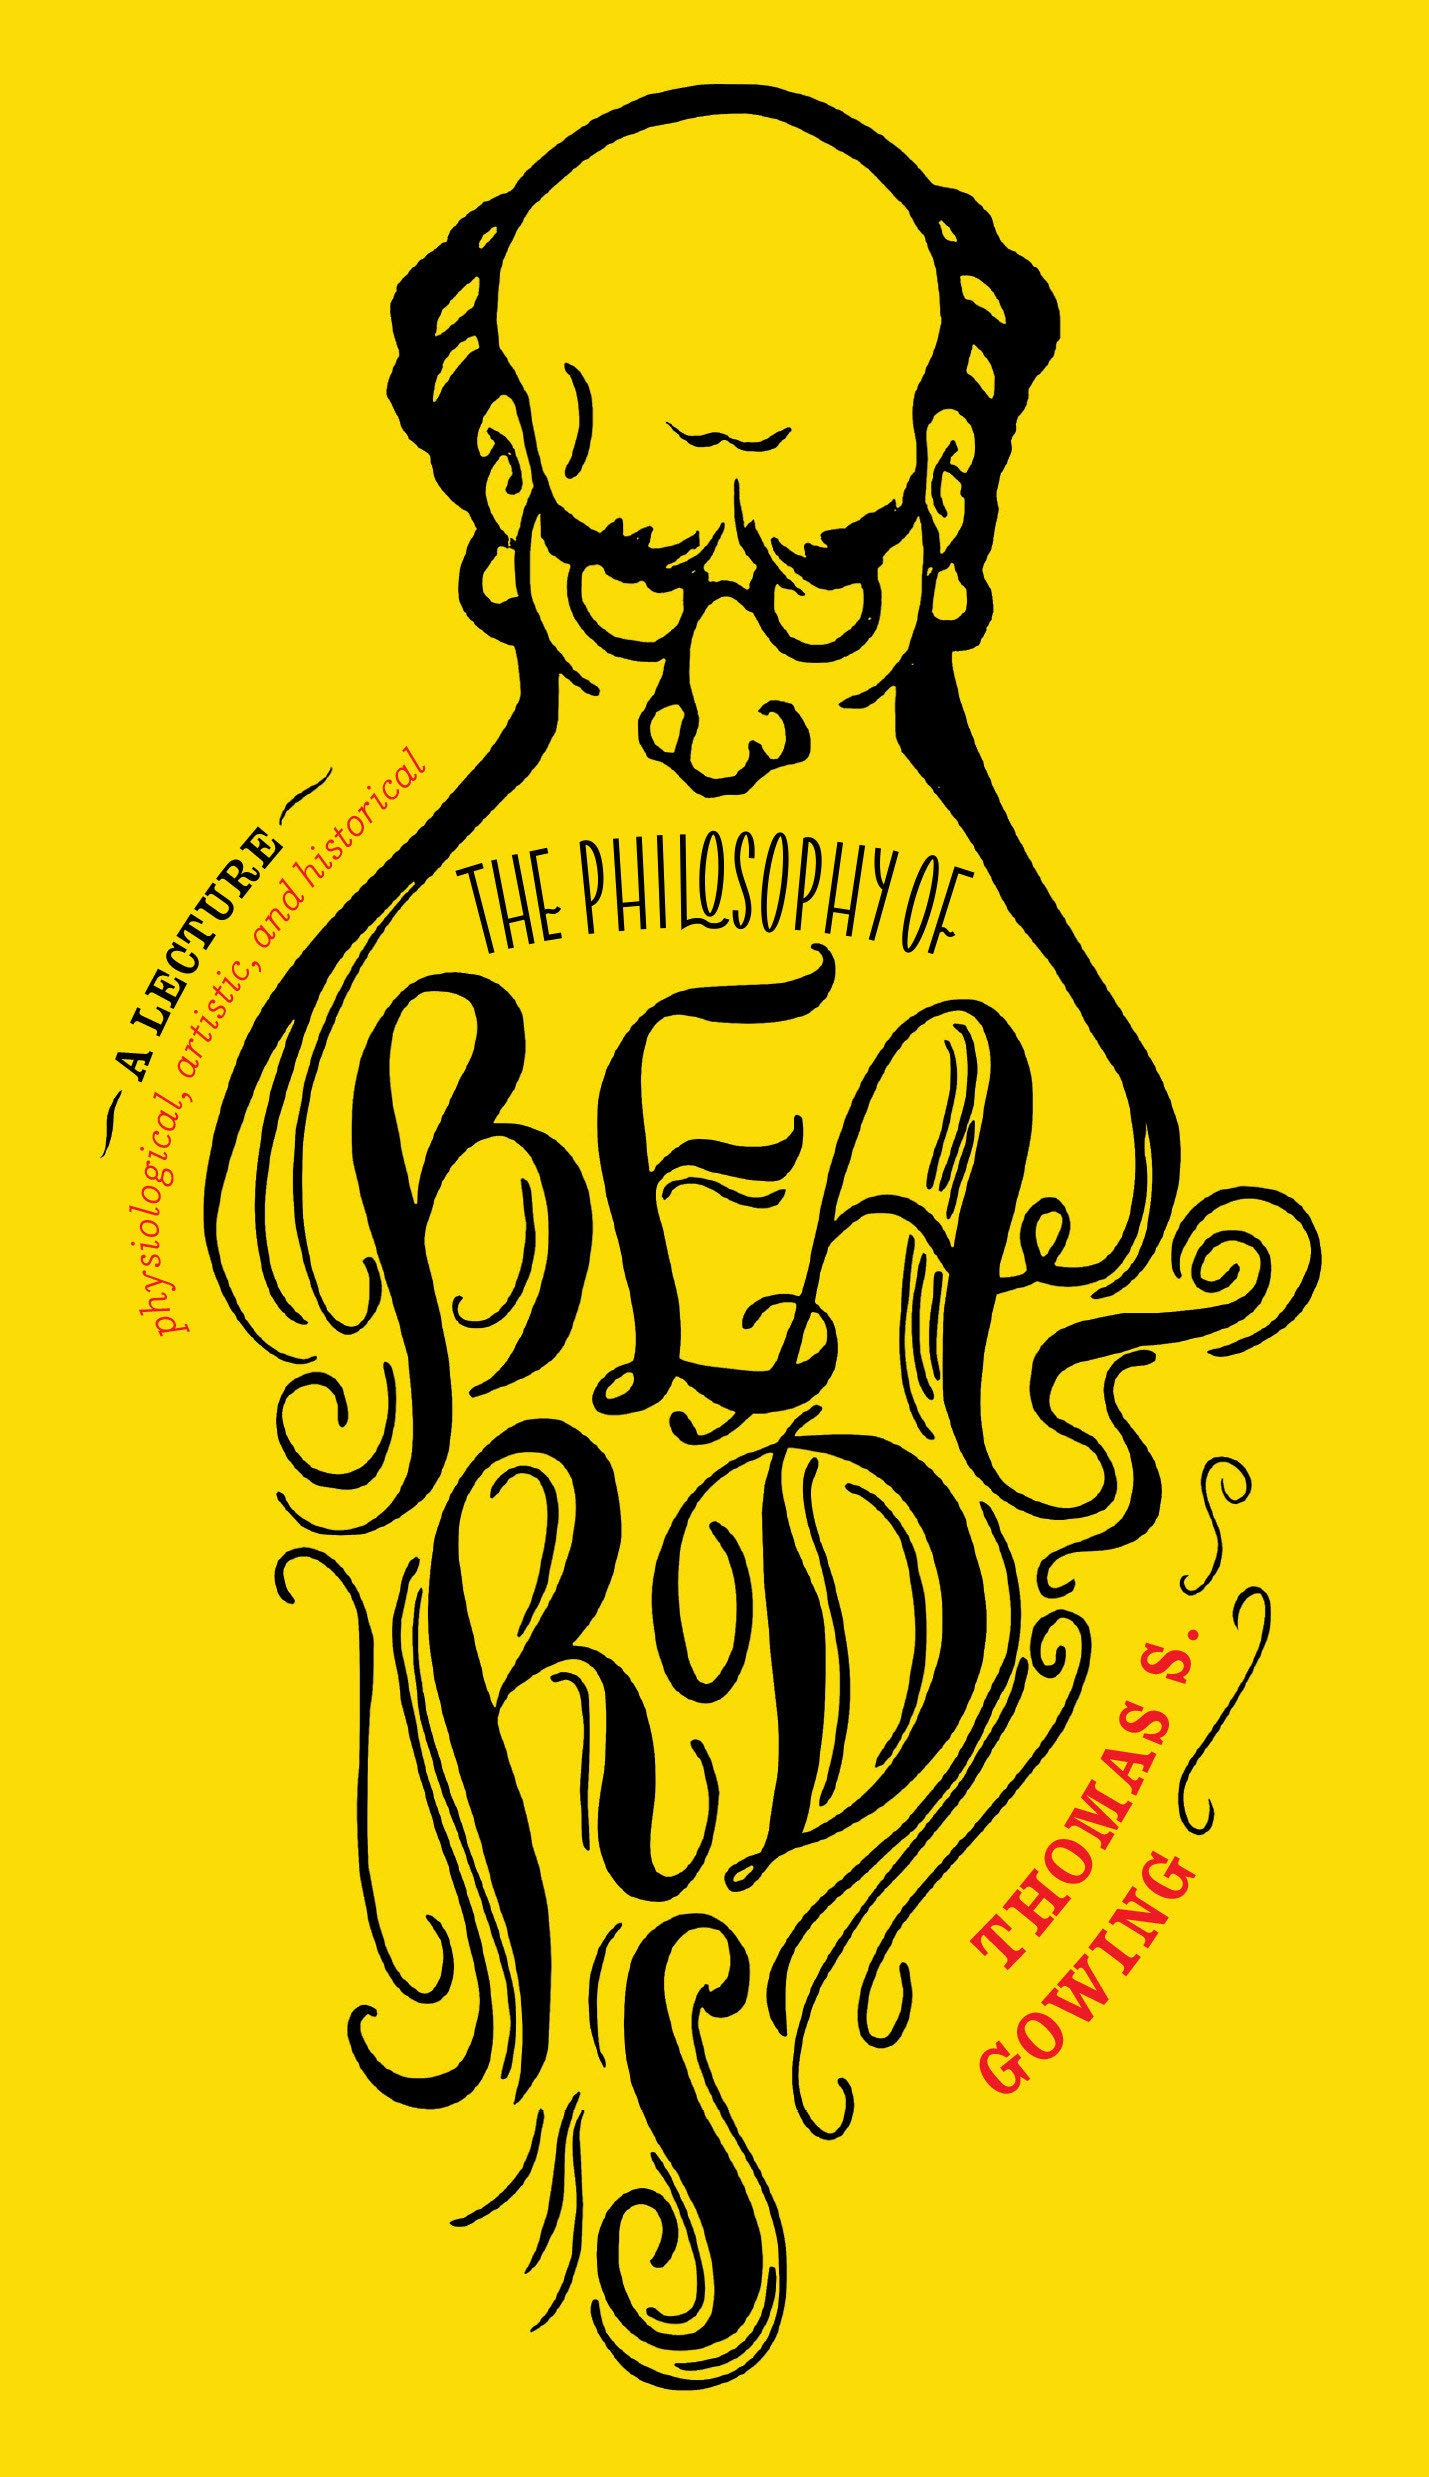 The Philosophy of Beards by Melville House